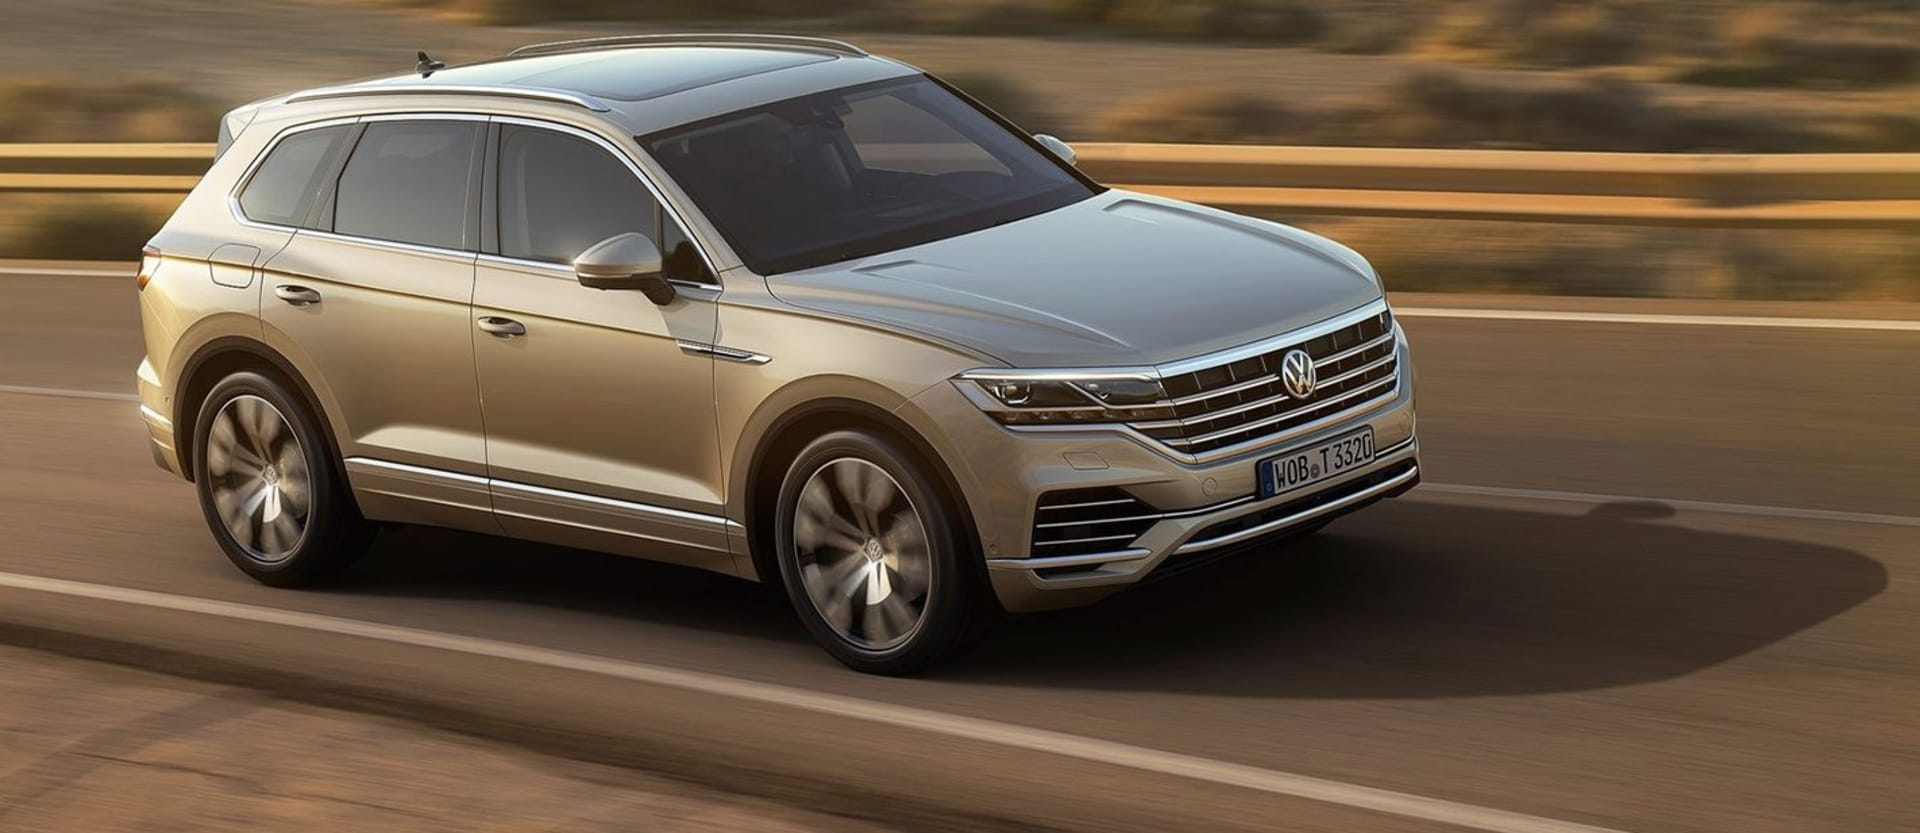 2018 Volkswagen Touareg will be the most advanced VW yet